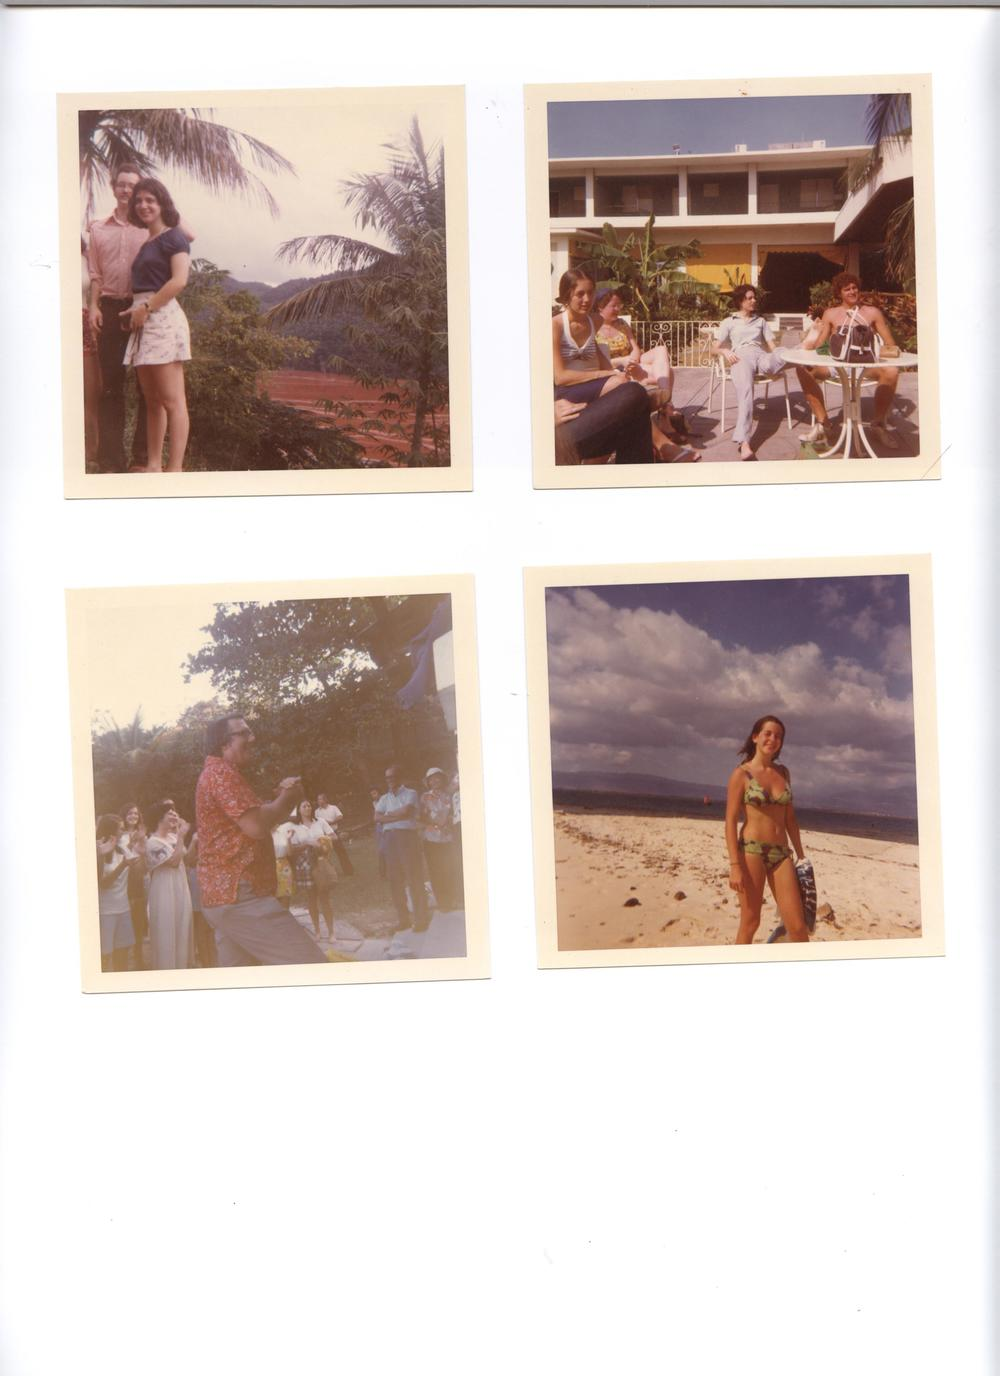 Top left – Two Glee Club members standing in front of bauxite lake Top right – Glee Club members relaxing Bottom left – Walter Nollner conducting at the Governor's Mansion concert Bottom right – me on the beach  Photos courtesy of[Nancy (Lester) du Tertre '77/ '78]